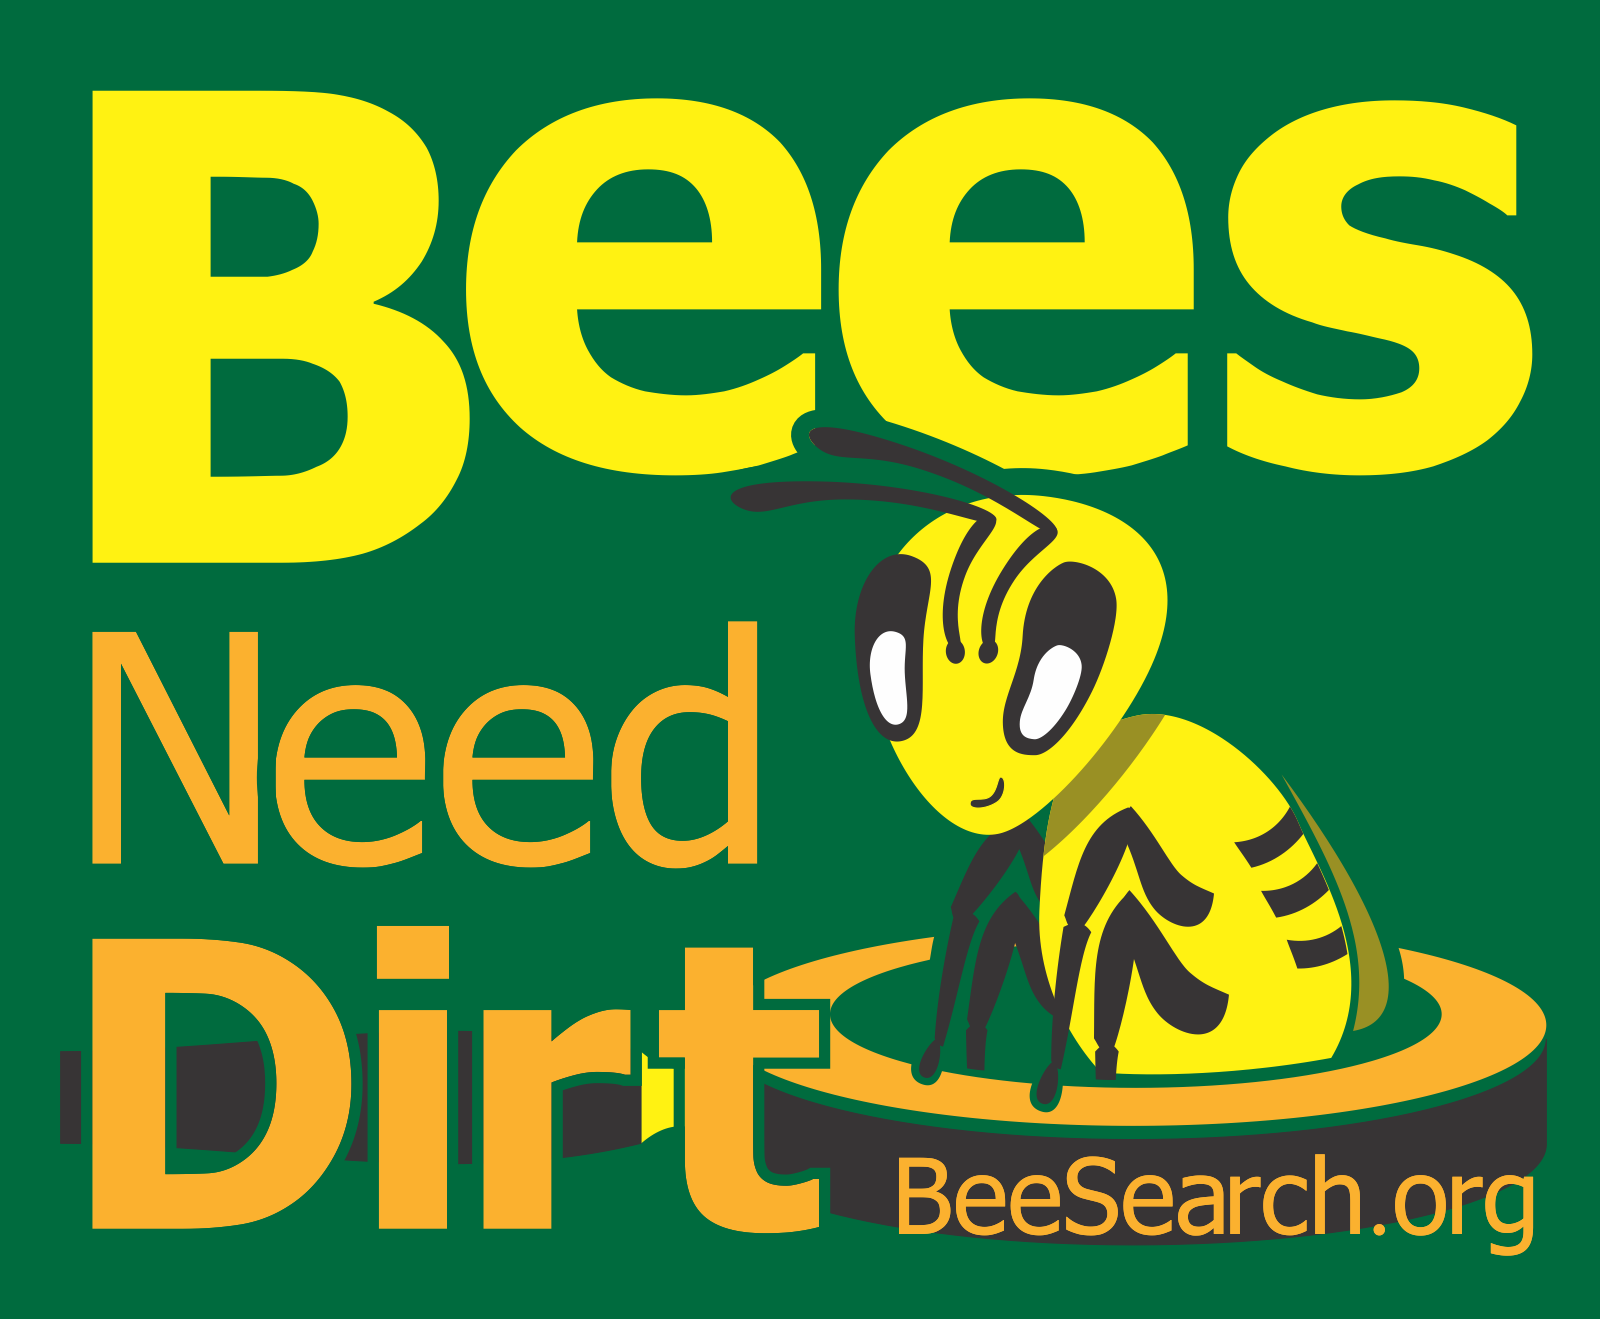 Beesearch.org -- Bees Need Dirt!